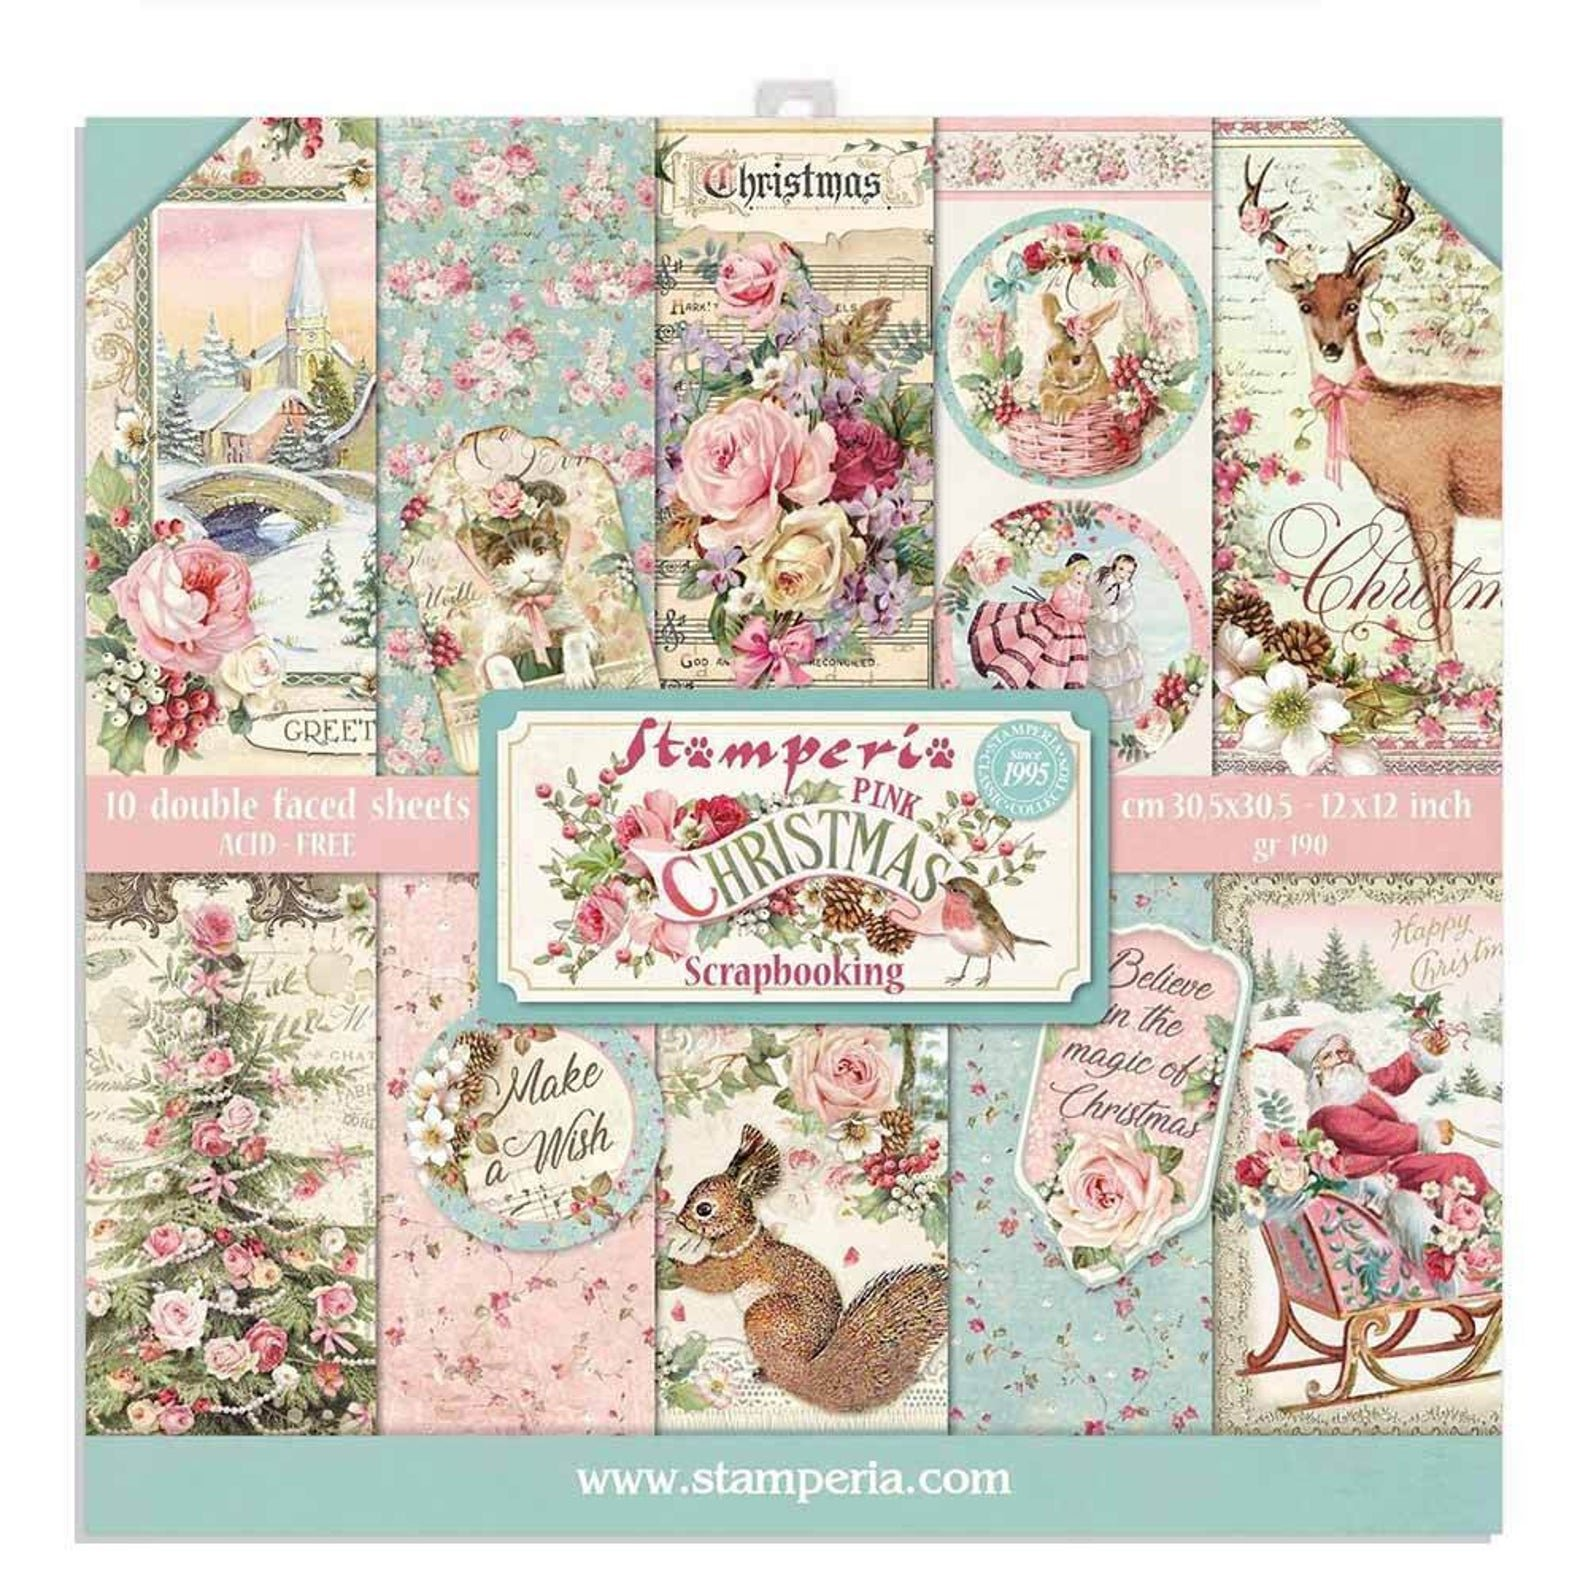 Stamperia's Pink Christmas 12x12 Group